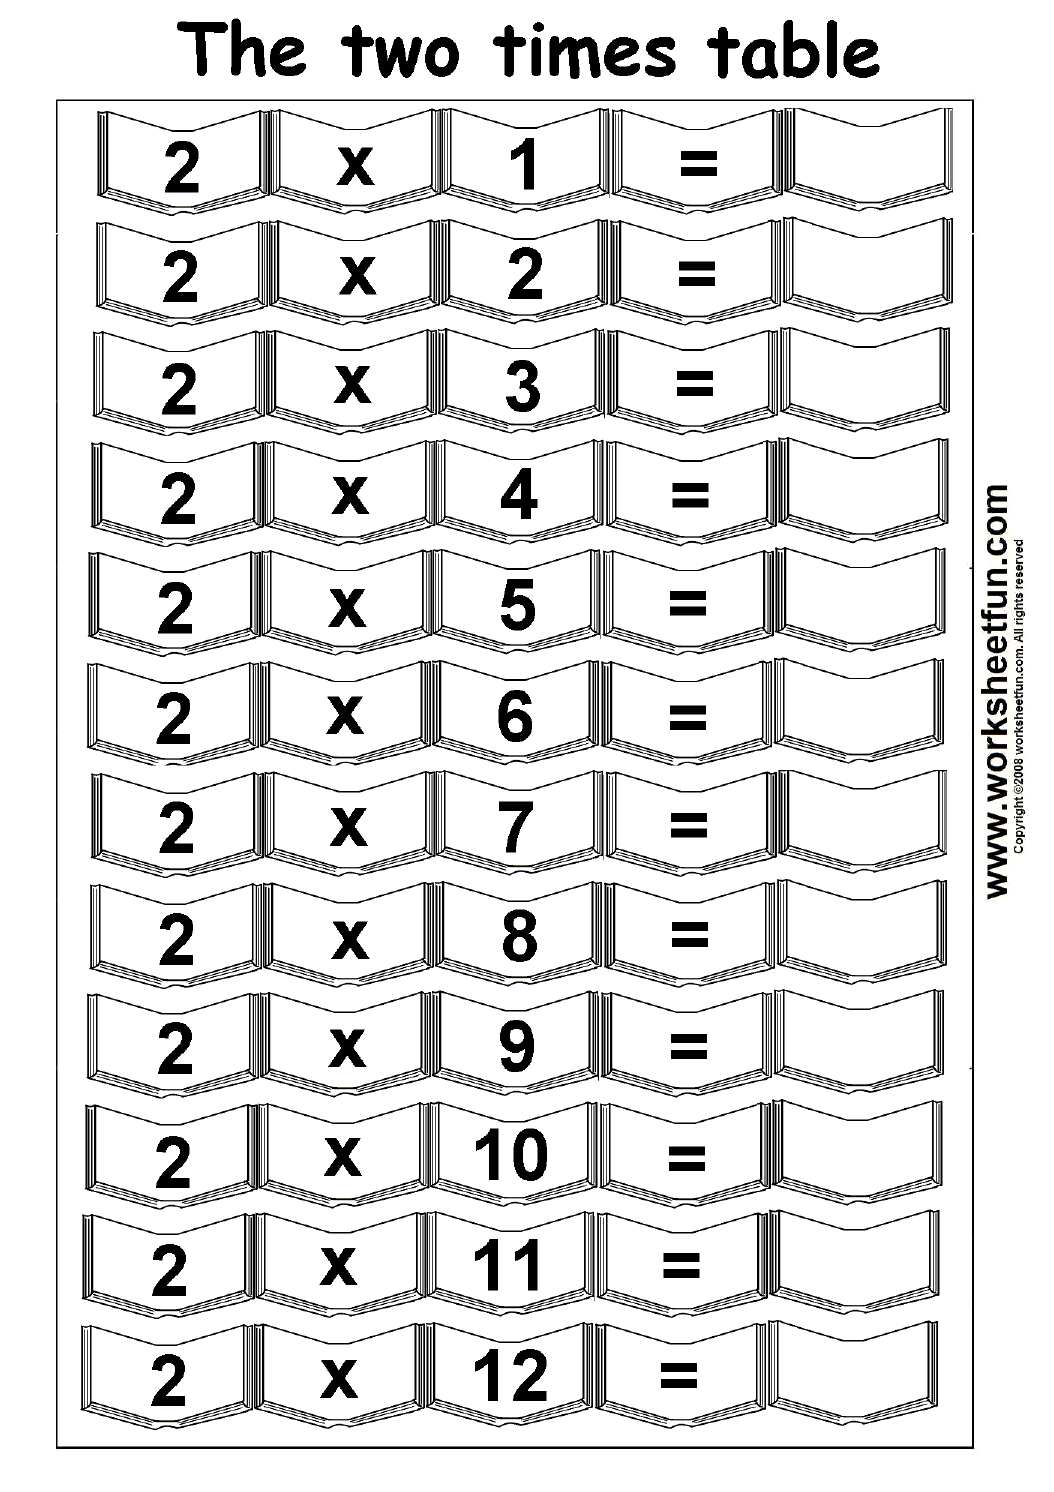 Printables Time Table Worksheet times table 4 free printable worksheets worksheetfun multiplication tables 2 3 5 four